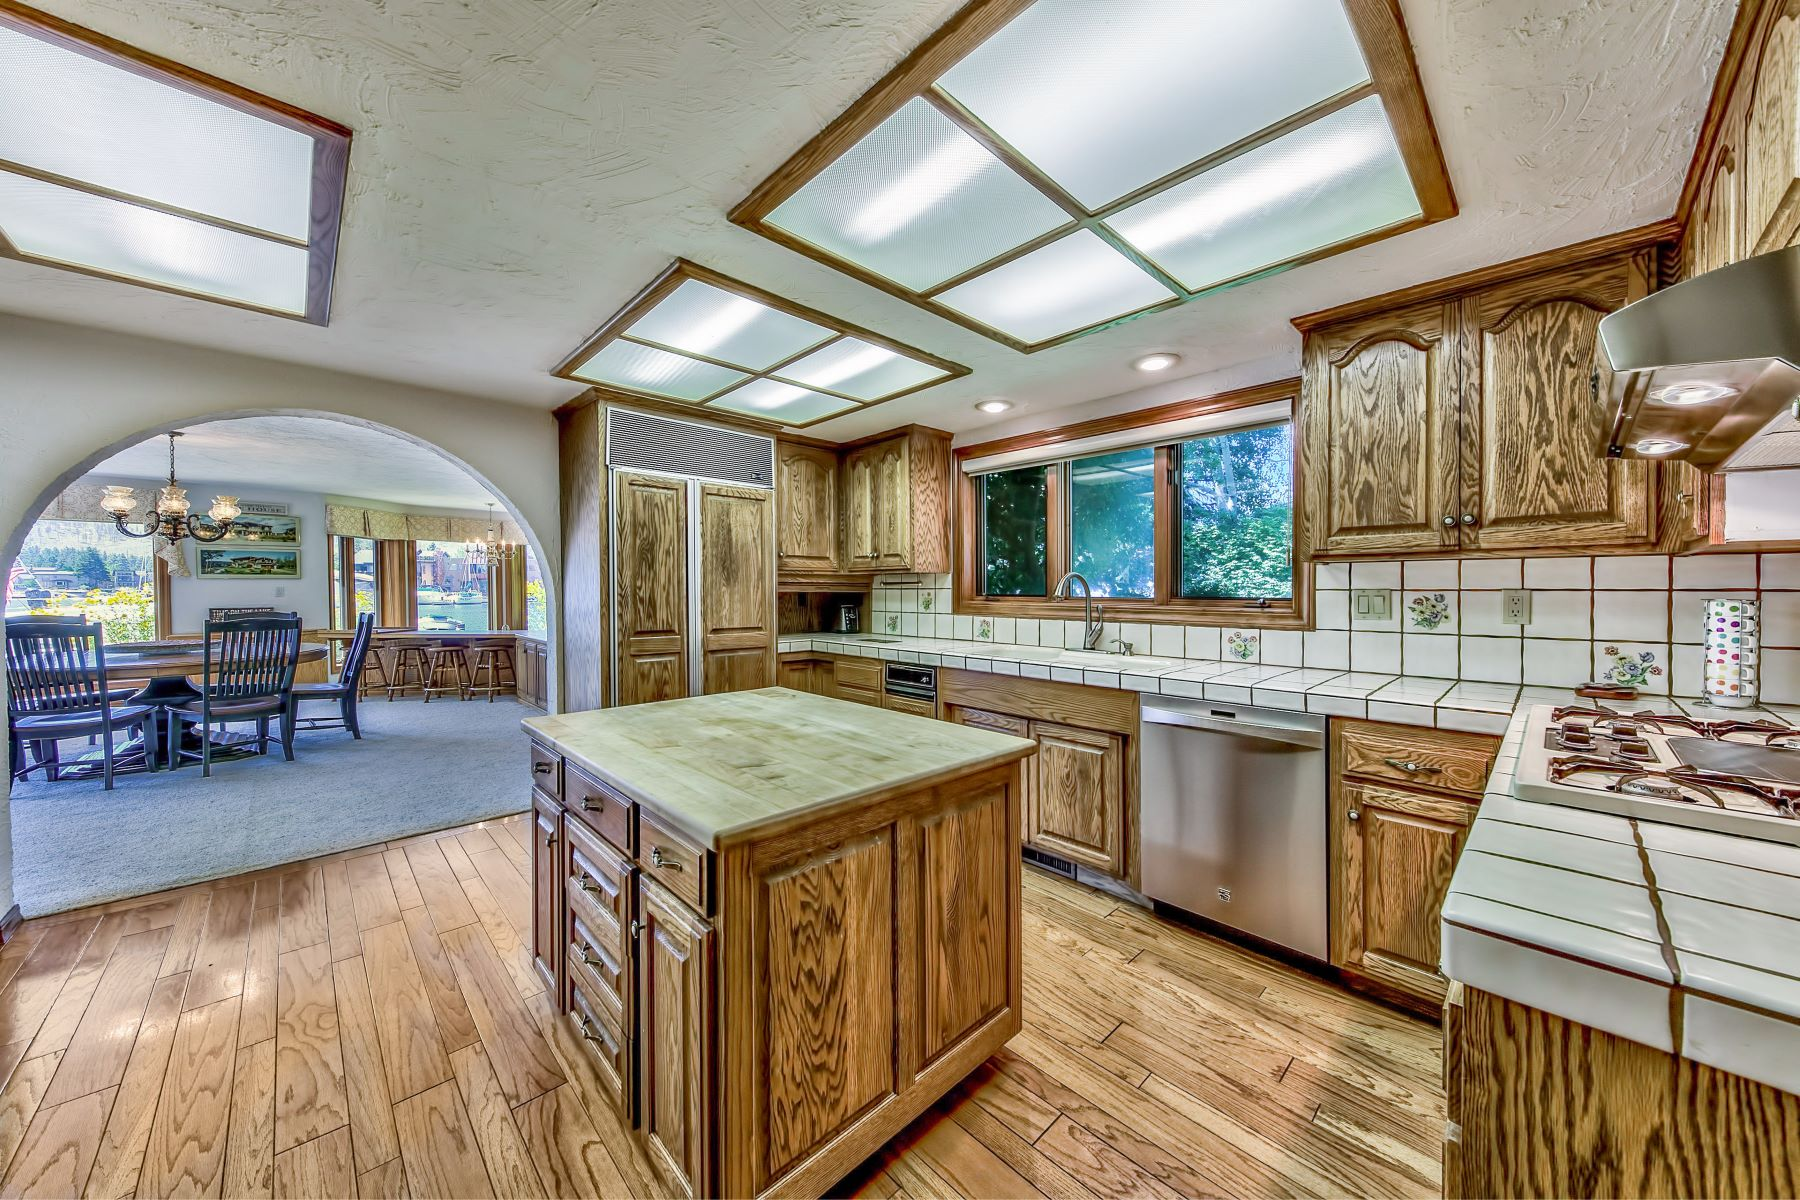 Additional photo for property listing at 2144 White Sands Drive, South Lake Tahoe, CA 96150 2144 White Sands Drive South Lake Tahoe, California 96150 United States